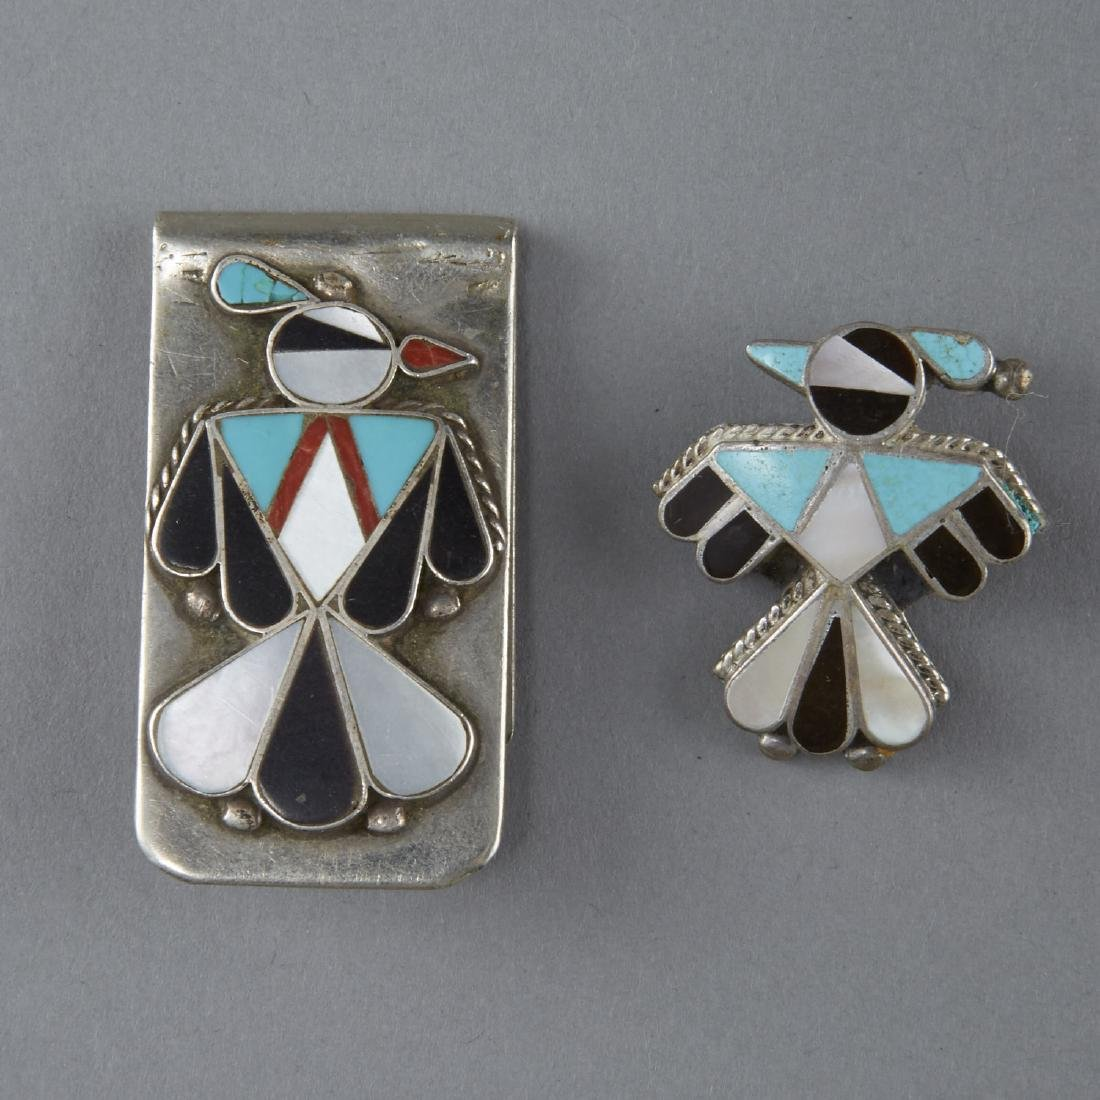 Southwestern Jewelry Silver, Turquoise, etc. - 8